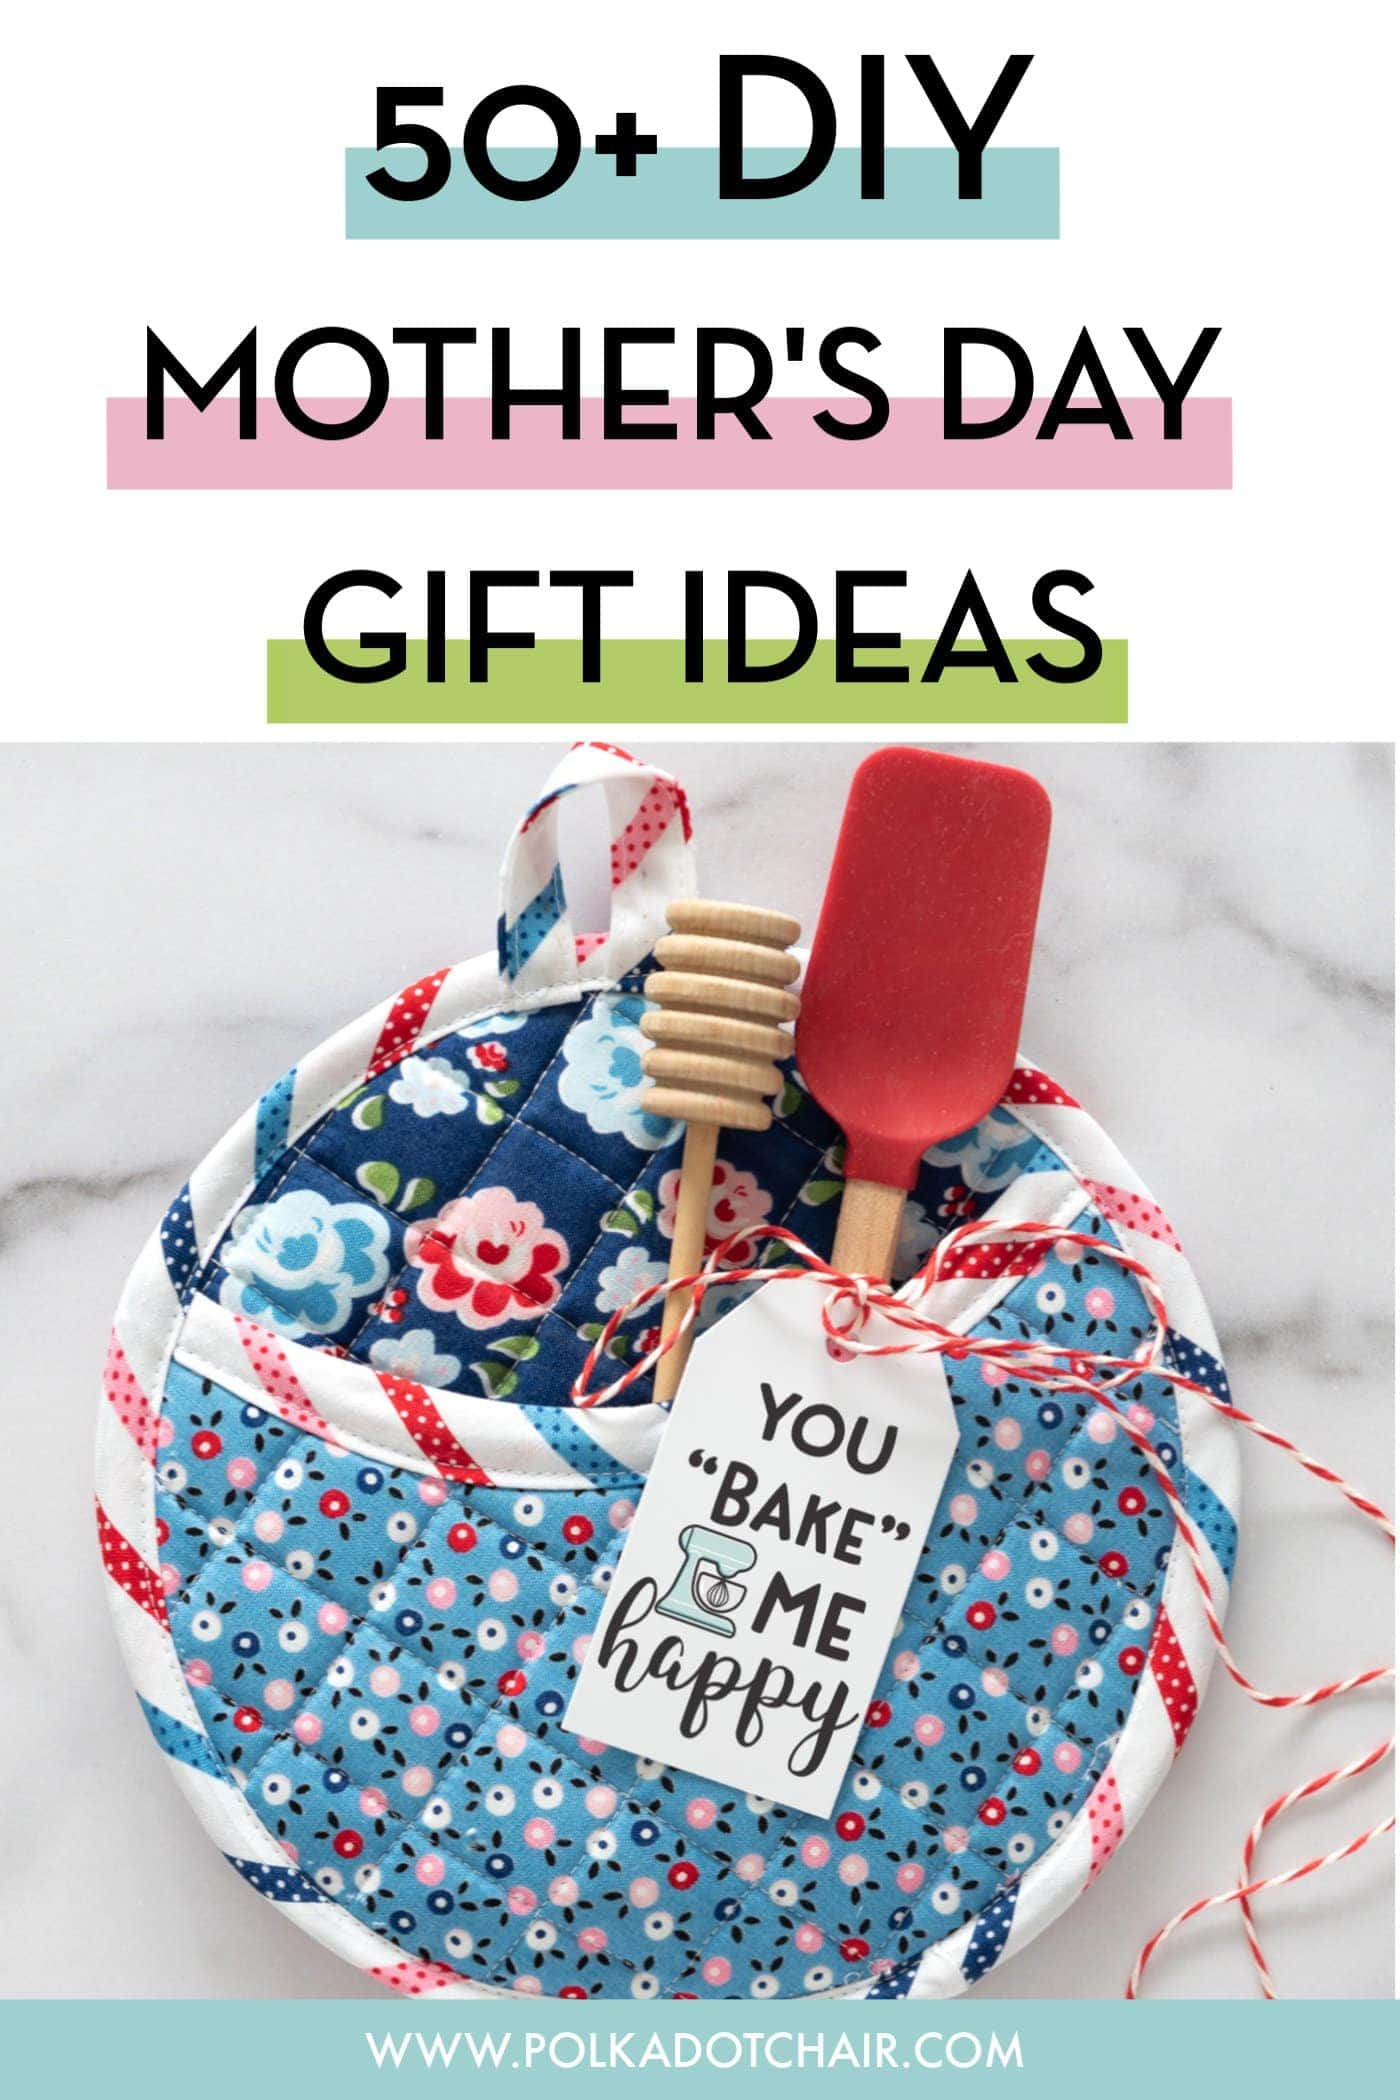 50 Diy Mother S Day Gift Ideas Projects The Polka Dot Chair